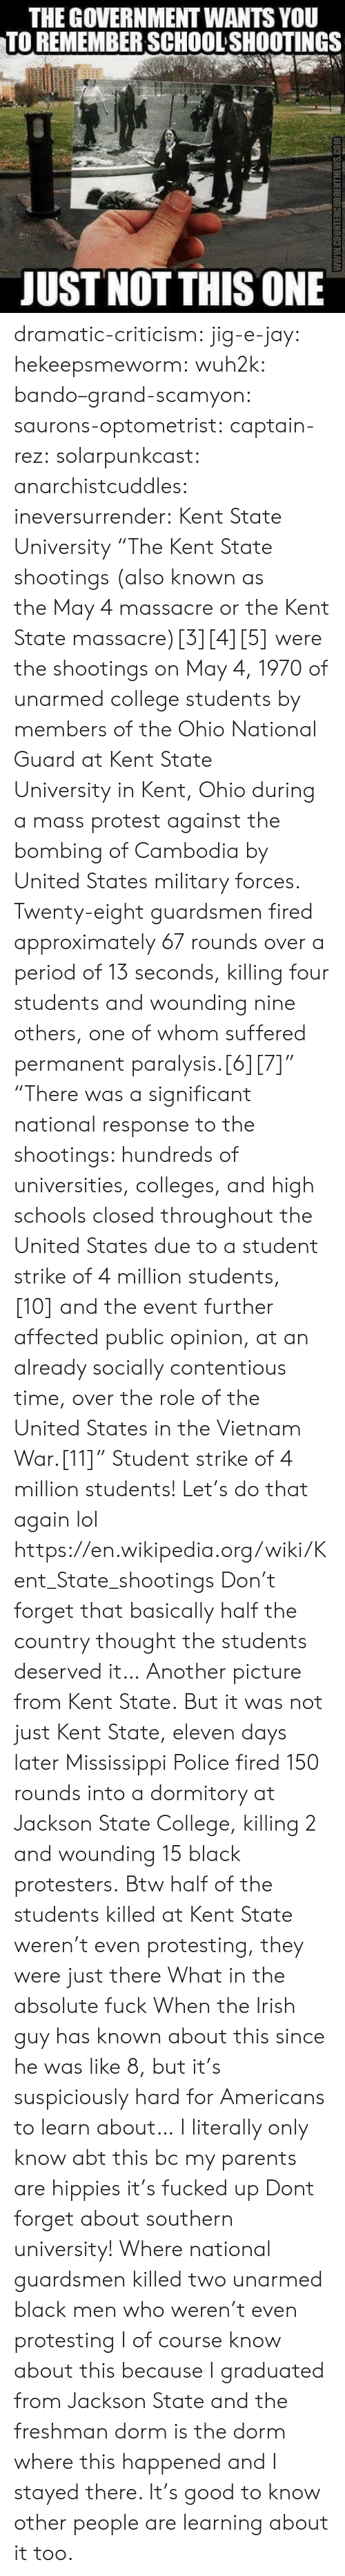 """national guard: THE GOVERNMENT WANTS YOU  TO REMEMBER SCHOOL'SHOOTINGS  UST NOTTHIS ONE dramatic-criticism:  jig-e-jay:  hekeepsmeworm:  wuh2k:  bando–grand-scamyon:   saurons-optometrist:   captain-rez:  solarpunkcast:  anarchistcuddles:  ineversurrender:  Kent State University  """"TheKent State shootings(also known as theMay 4 massacreor theKent State massacre)[3][4][5]were the shootings on May 4, 1970 of unarmed college students by members of theOhio National GuardatKent State UniversityinKent, Ohioduring a mass protest against the bombing of Cambodia by United States military forces. Twenty-eight guardsmen fired approximately 67 rounds over a period of 13 seconds, killing four students and wounding nine others, one of whom suffered permanentparalysis.[6][7]"""" """"There was a significant national response to the shootings: hundreds of universities, colleges, and high schools closed throughout the United States due to astudent strike of 4 million students,[10]and the event further affected public opinion, at an already socially contentious time, over therole of the United States in the Vietnam War.[11]"""" Student strike of 4 million students! Let's do that again lol https://en.wikipedia.org/wiki/Kent_State_shootings   Don't forget that basically half the country thought the students deserved it…  Another picture from Kent State. But it was not just Kent State, eleven days laterMississippi Police fired 150 rounds into a dormitory at Jackson State College, killing 2 and wounding 15 black protesters.   Btw half of the students killed at Kent State weren't even protesting, they were just there   What in the absolute fuck    When the Irish guy has known about this since he was like 8, but it's suspiciously hard for Americans to learn about…   I literally only know abt this bc my parents are hippies it's fucked up   Dont forget about southern university! Where national guardsmen killed two unarmed black men who weren't even protesting   I of course know about this because I gra"""